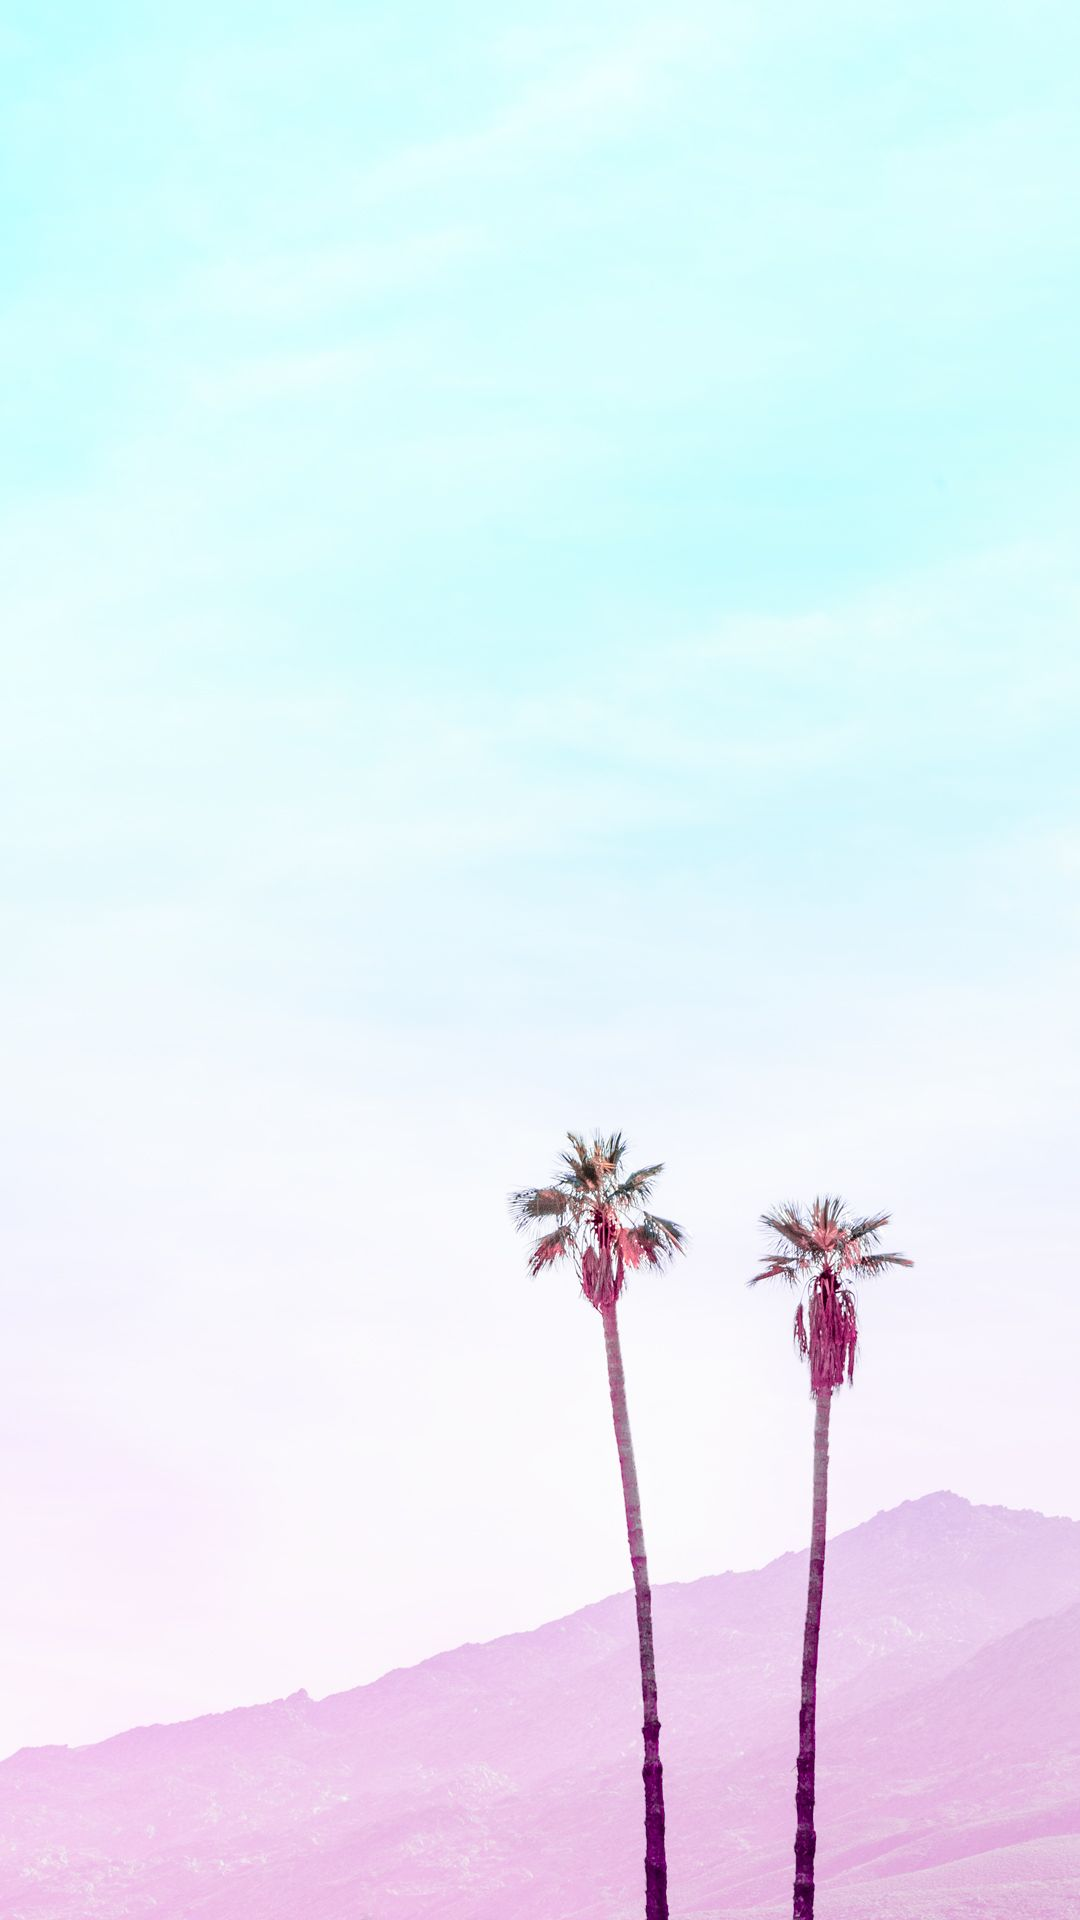 Wallpapers for your phone! | Taps, Artworks and Style